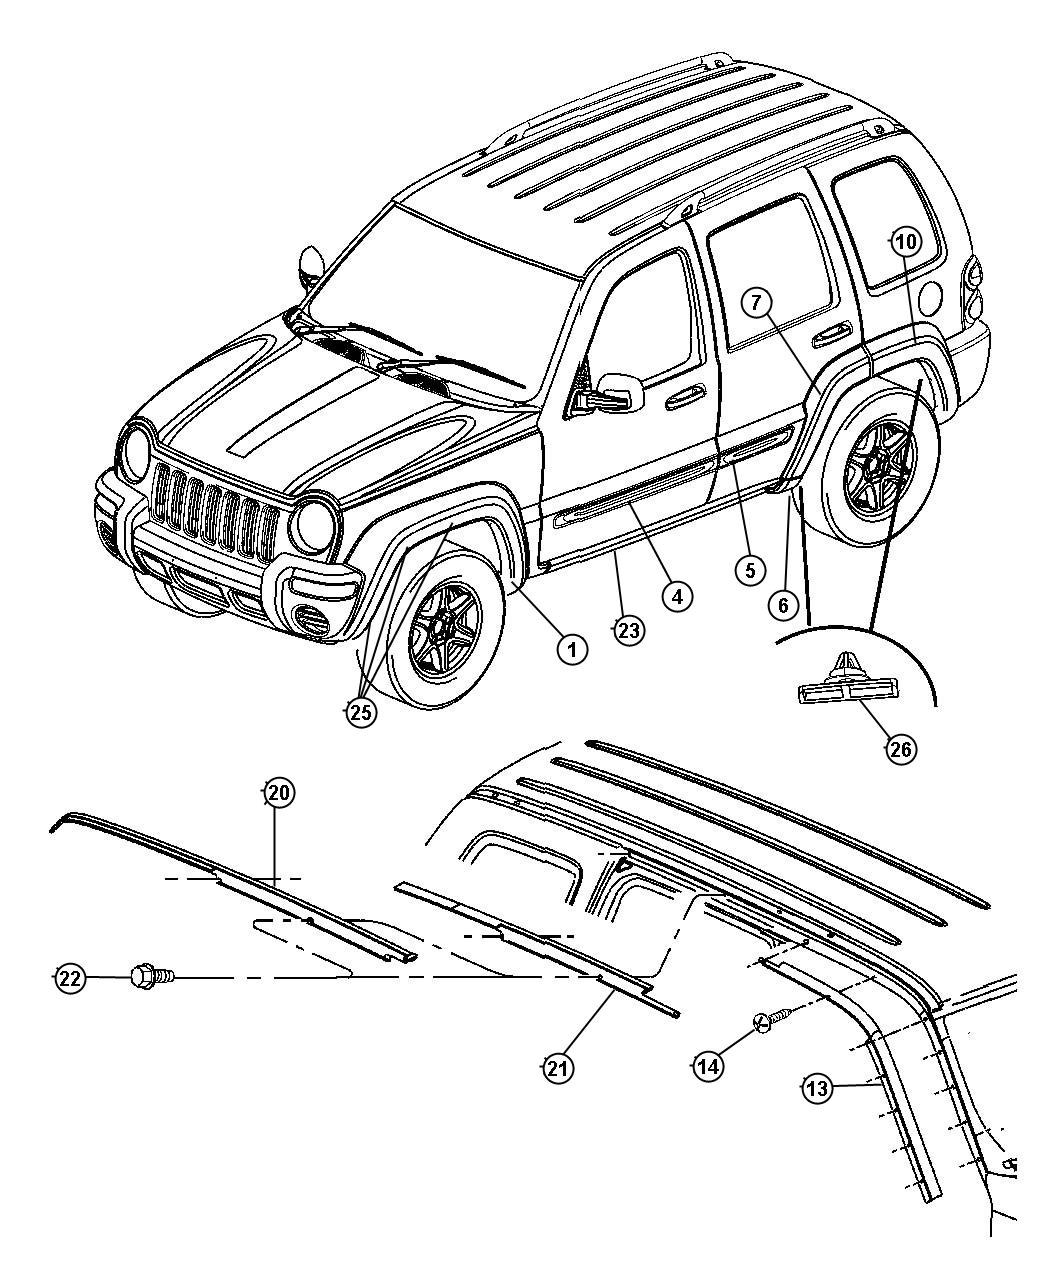 2003 toyota tacoma oem parts diagram html